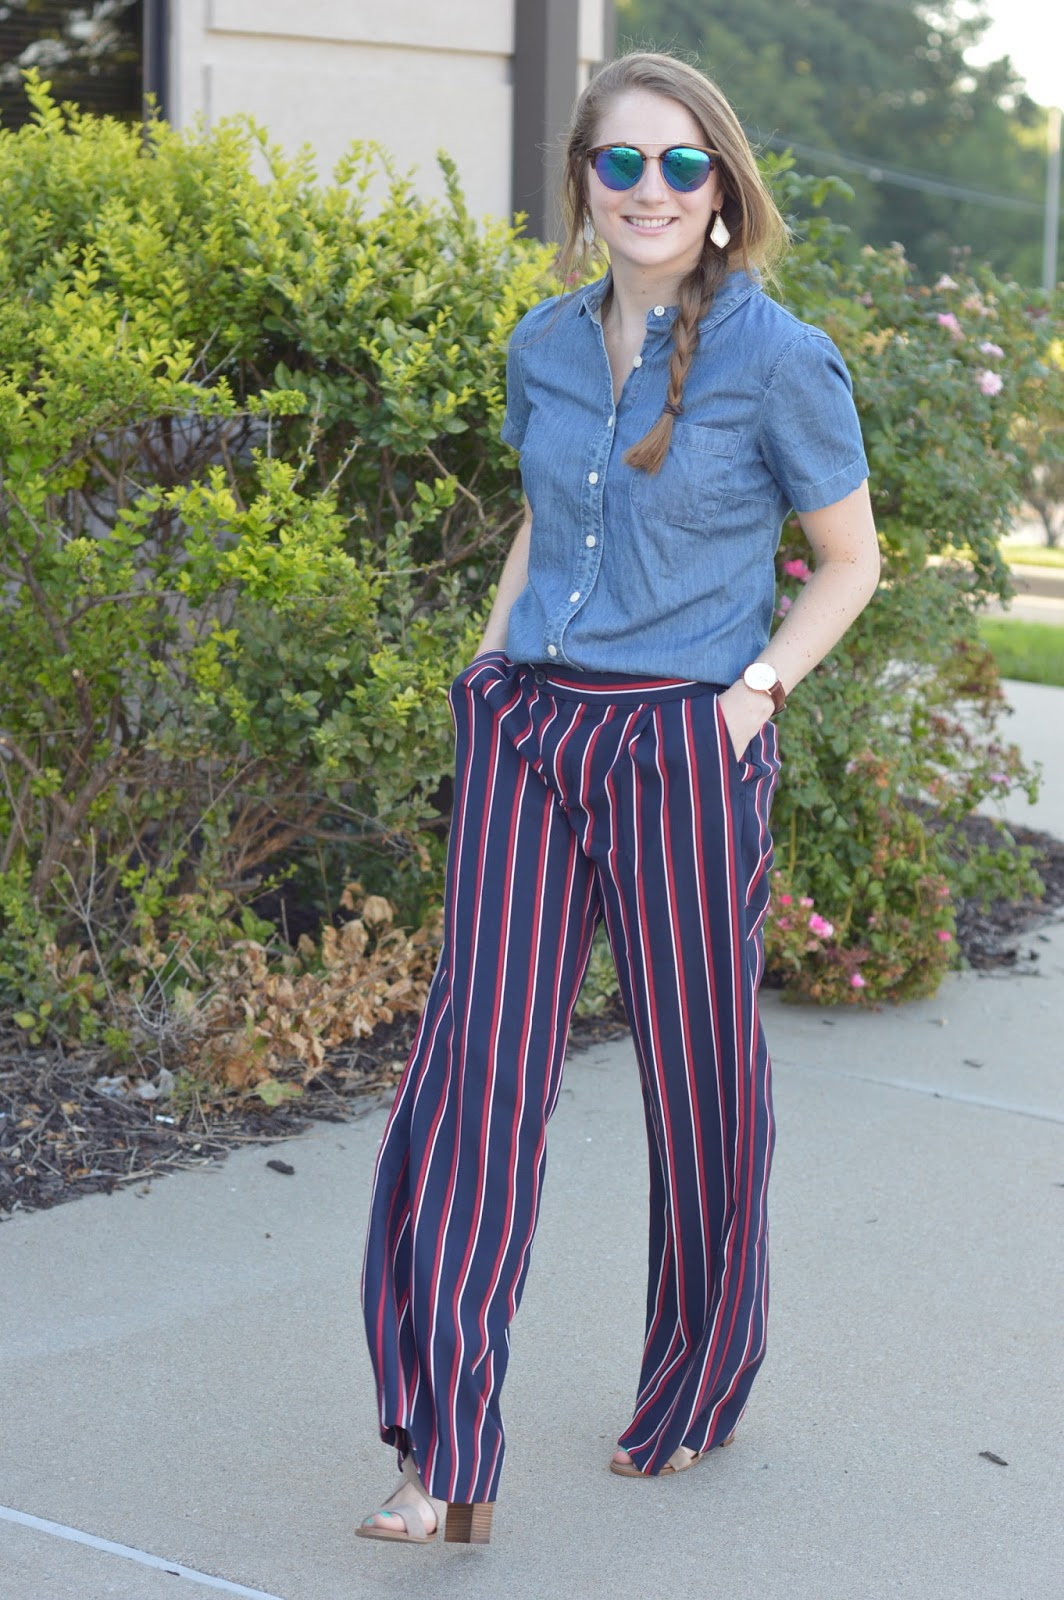 striped pants with a chambray top | what to pair with a chambray top | work outfit ideas | how to dress cute and still be professional for work | business casual dress code outfit ideas | a memory of us